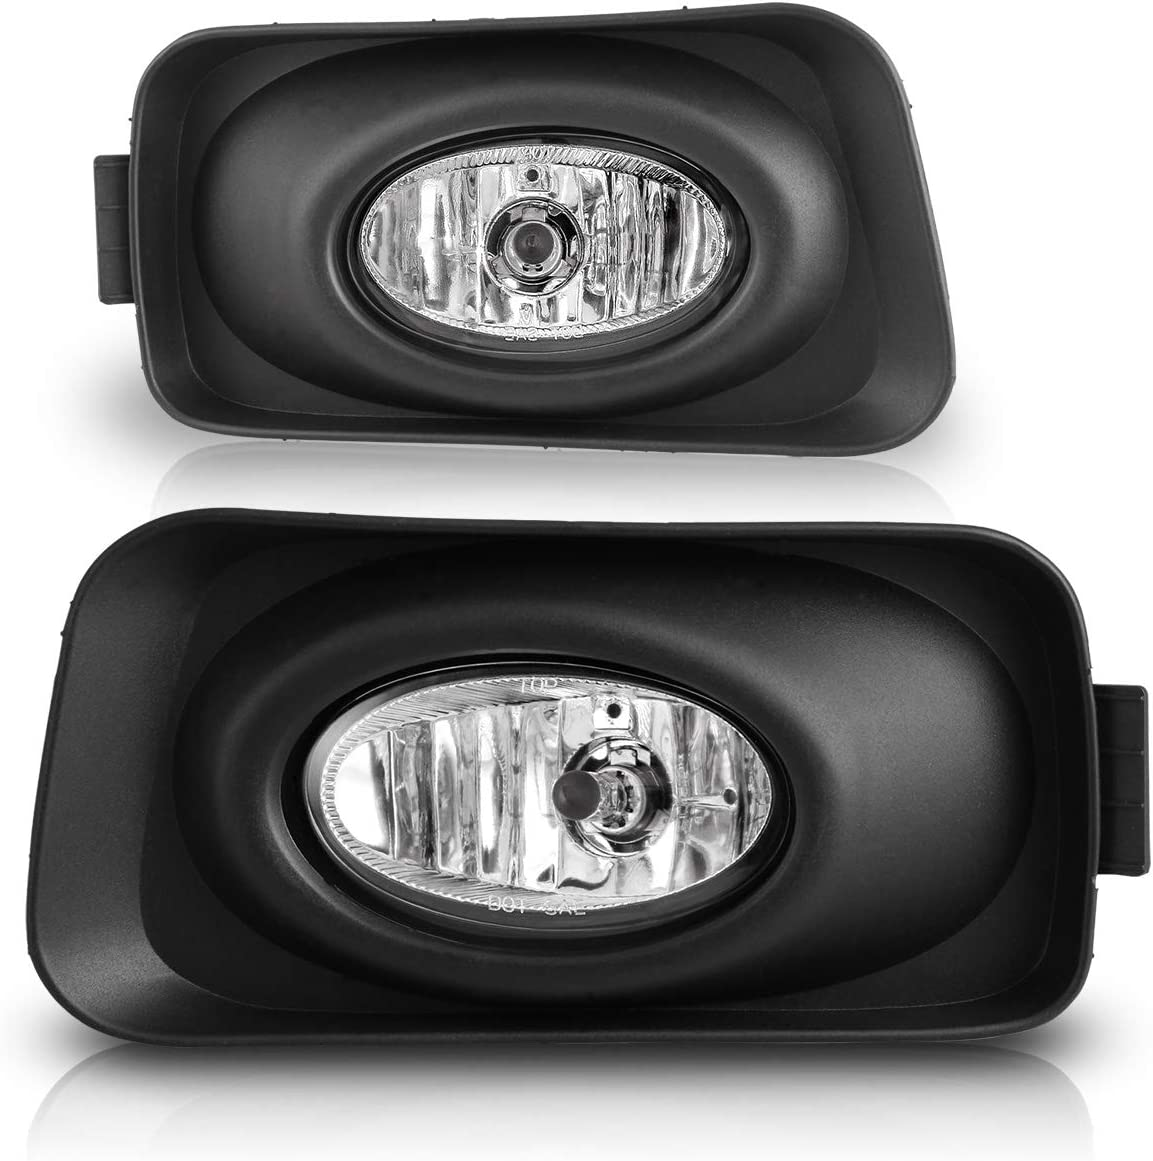 Fog Lights For Acura TSX 2004-2005 Fog Light Assembly 2PCS OEM Replacement Fog Lamps AUTOWIKI